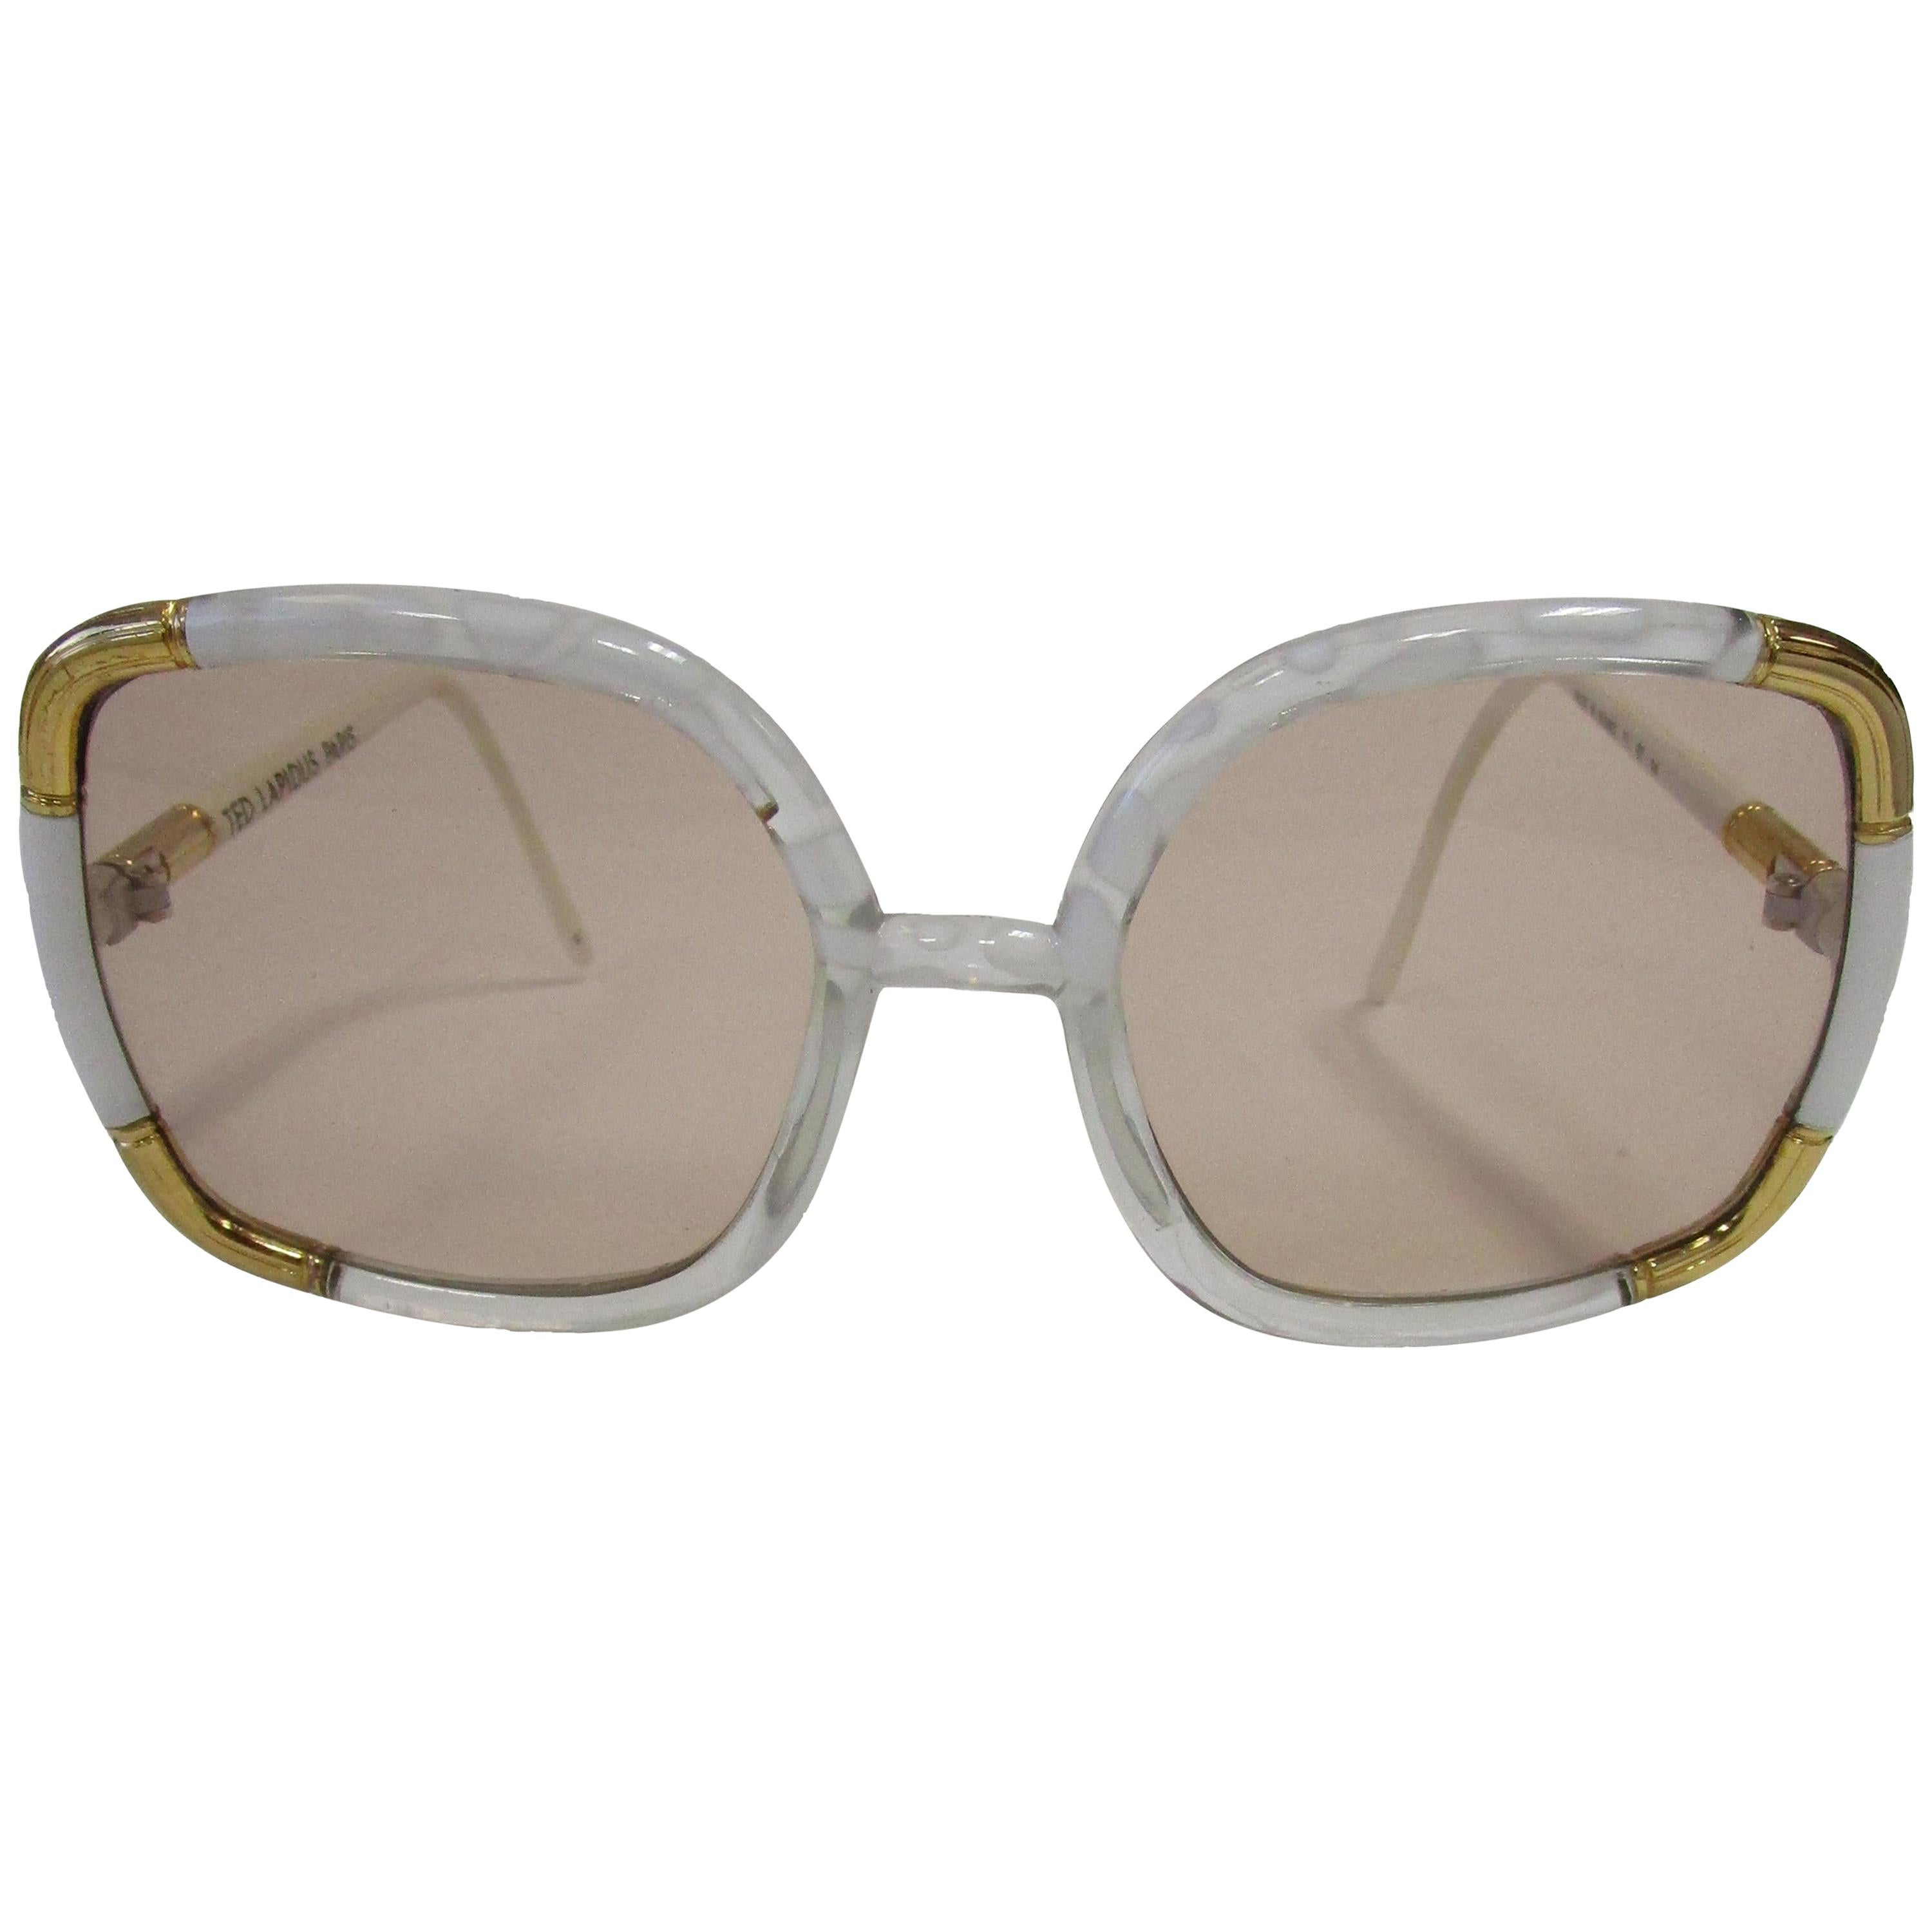 1970s Classic Ted Lapidus Paris Sunglasses White Marbled and Gold Hardware